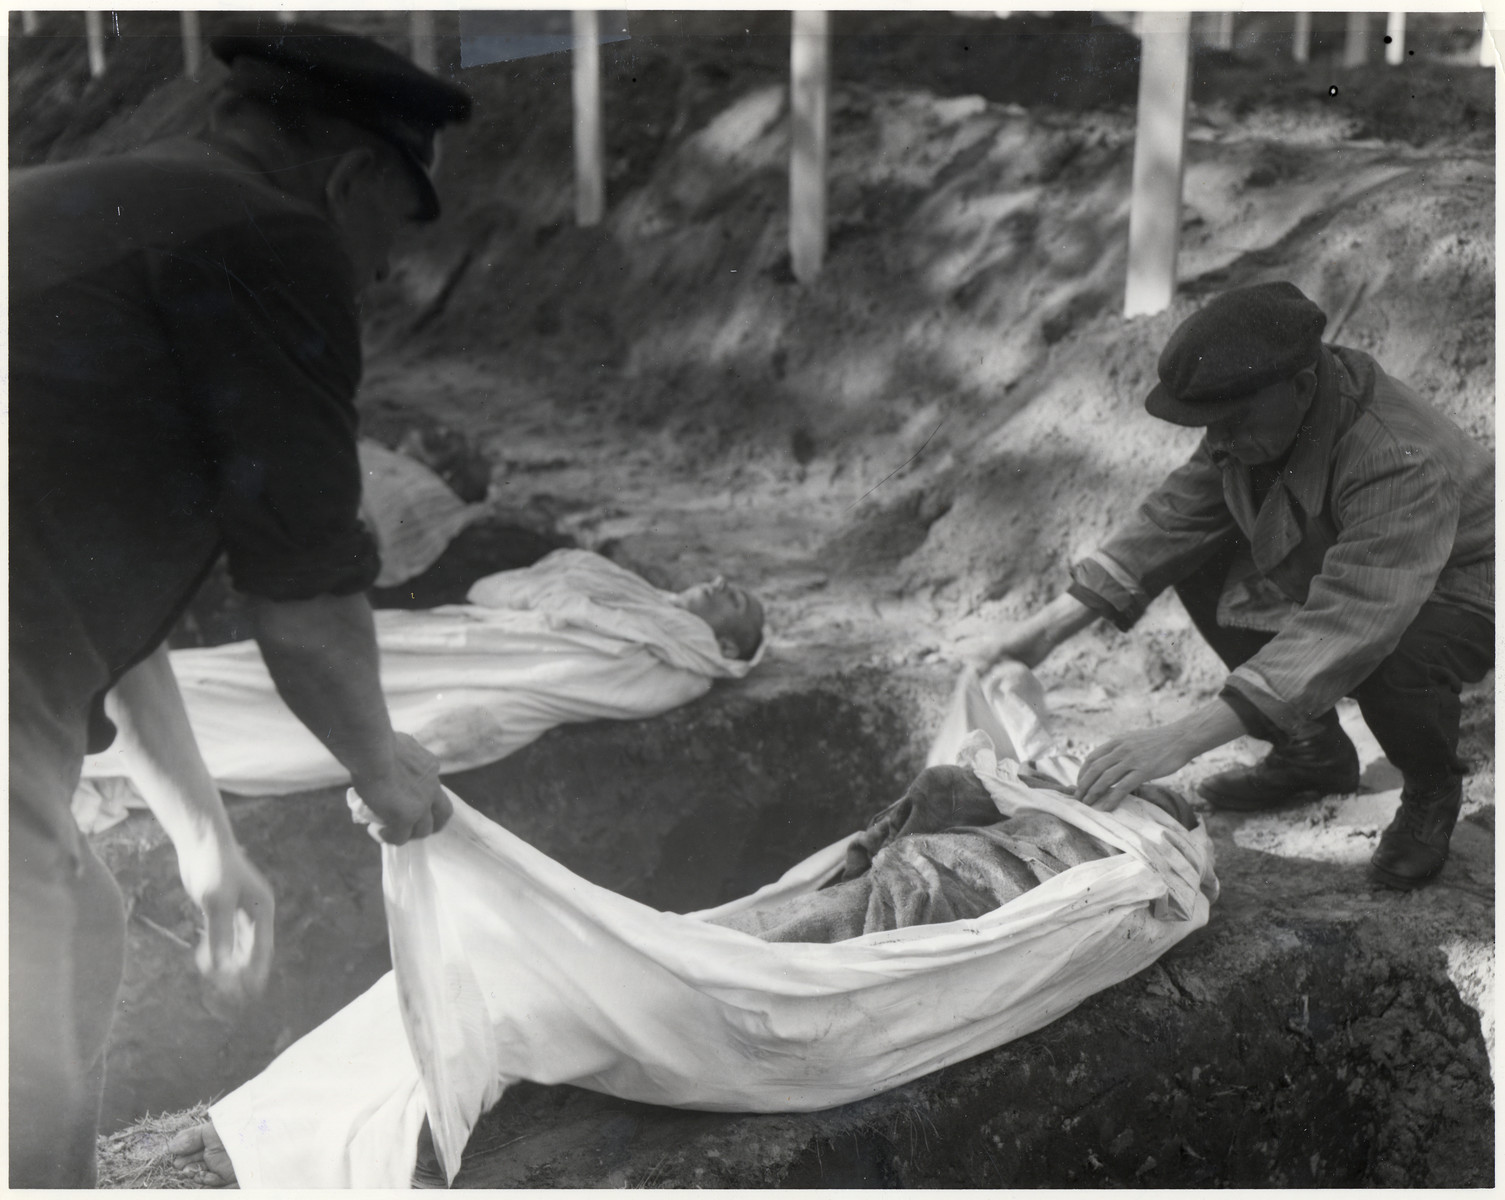 American soldiers force German civilians to participate in the burial of prisoners who died in the Woebbelin concentration camp.